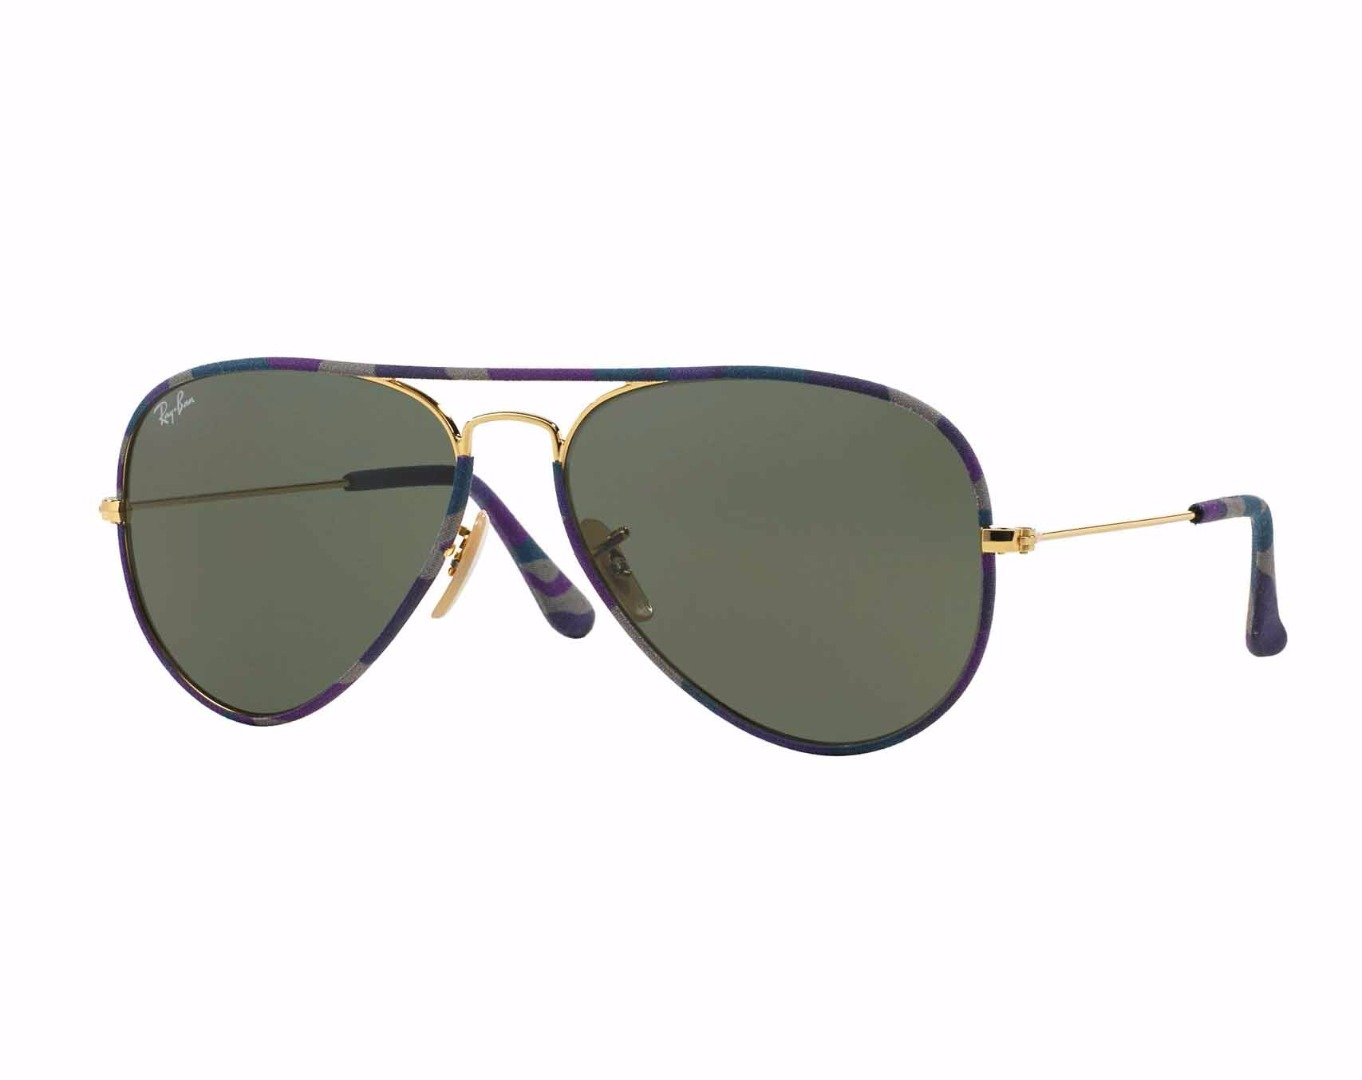 ray ban sunglasses frames walmart  ray ban men's aviator camouflage sunglasses w/ purple frame (58mm)